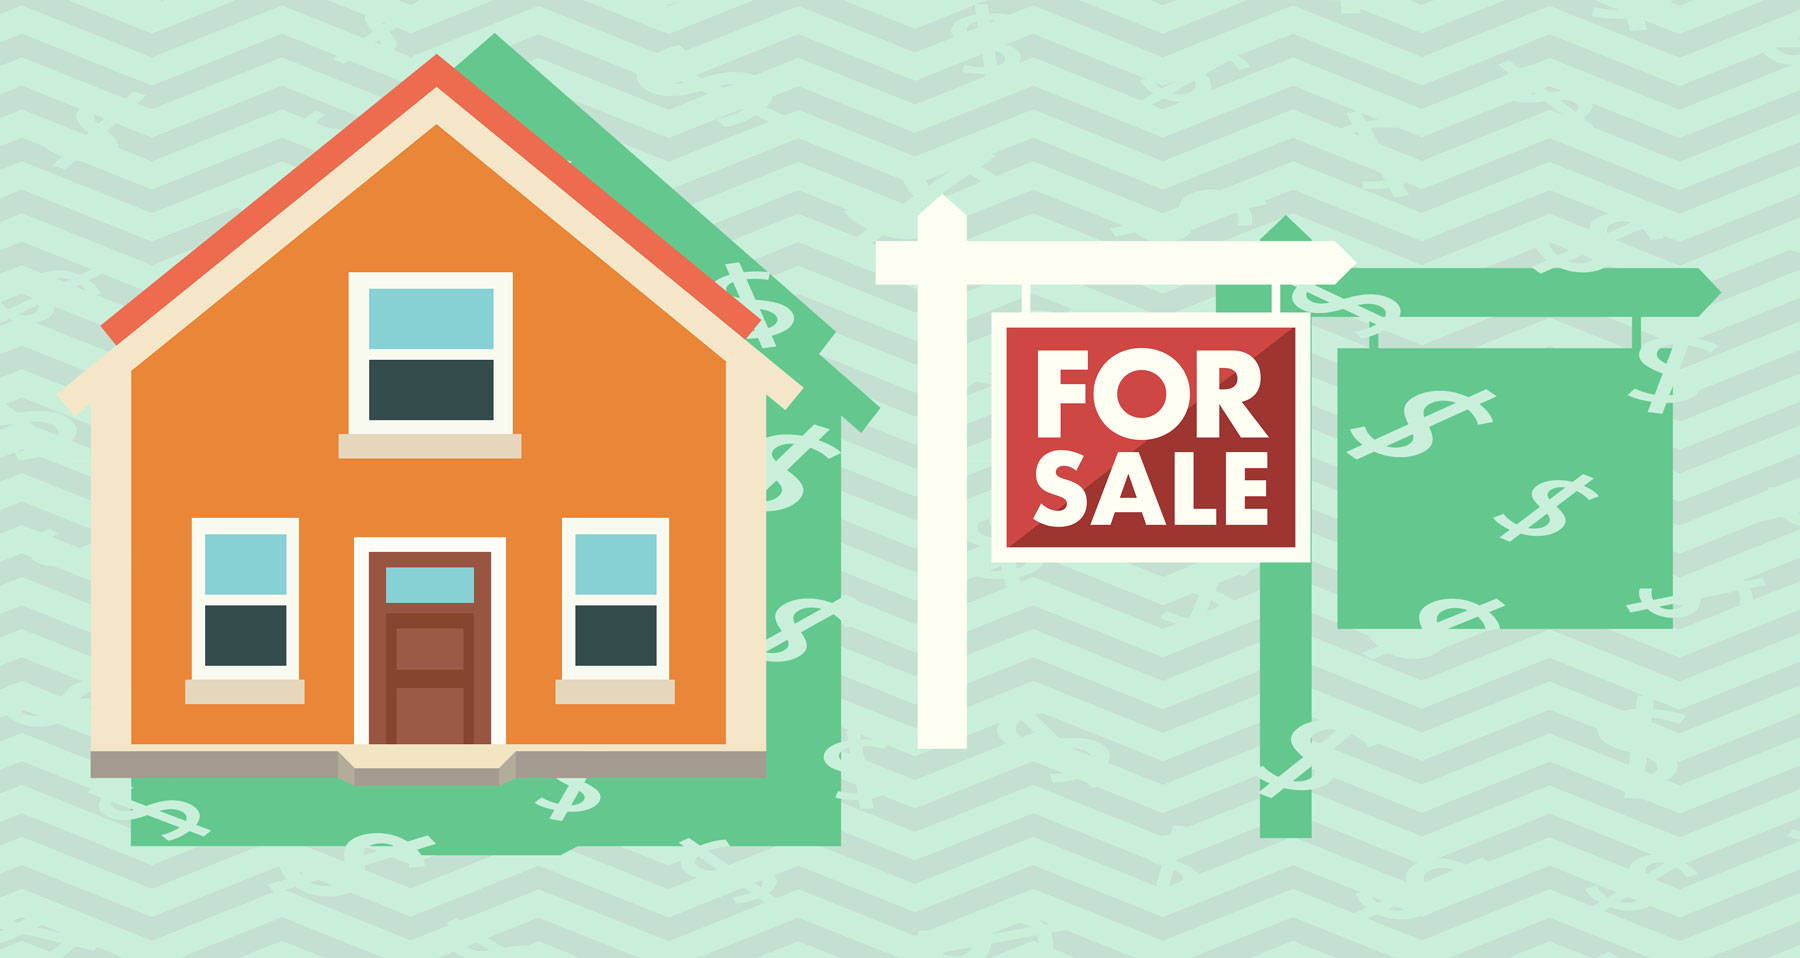 The costs of selling a house or home - home with for sale sign and dollar signs